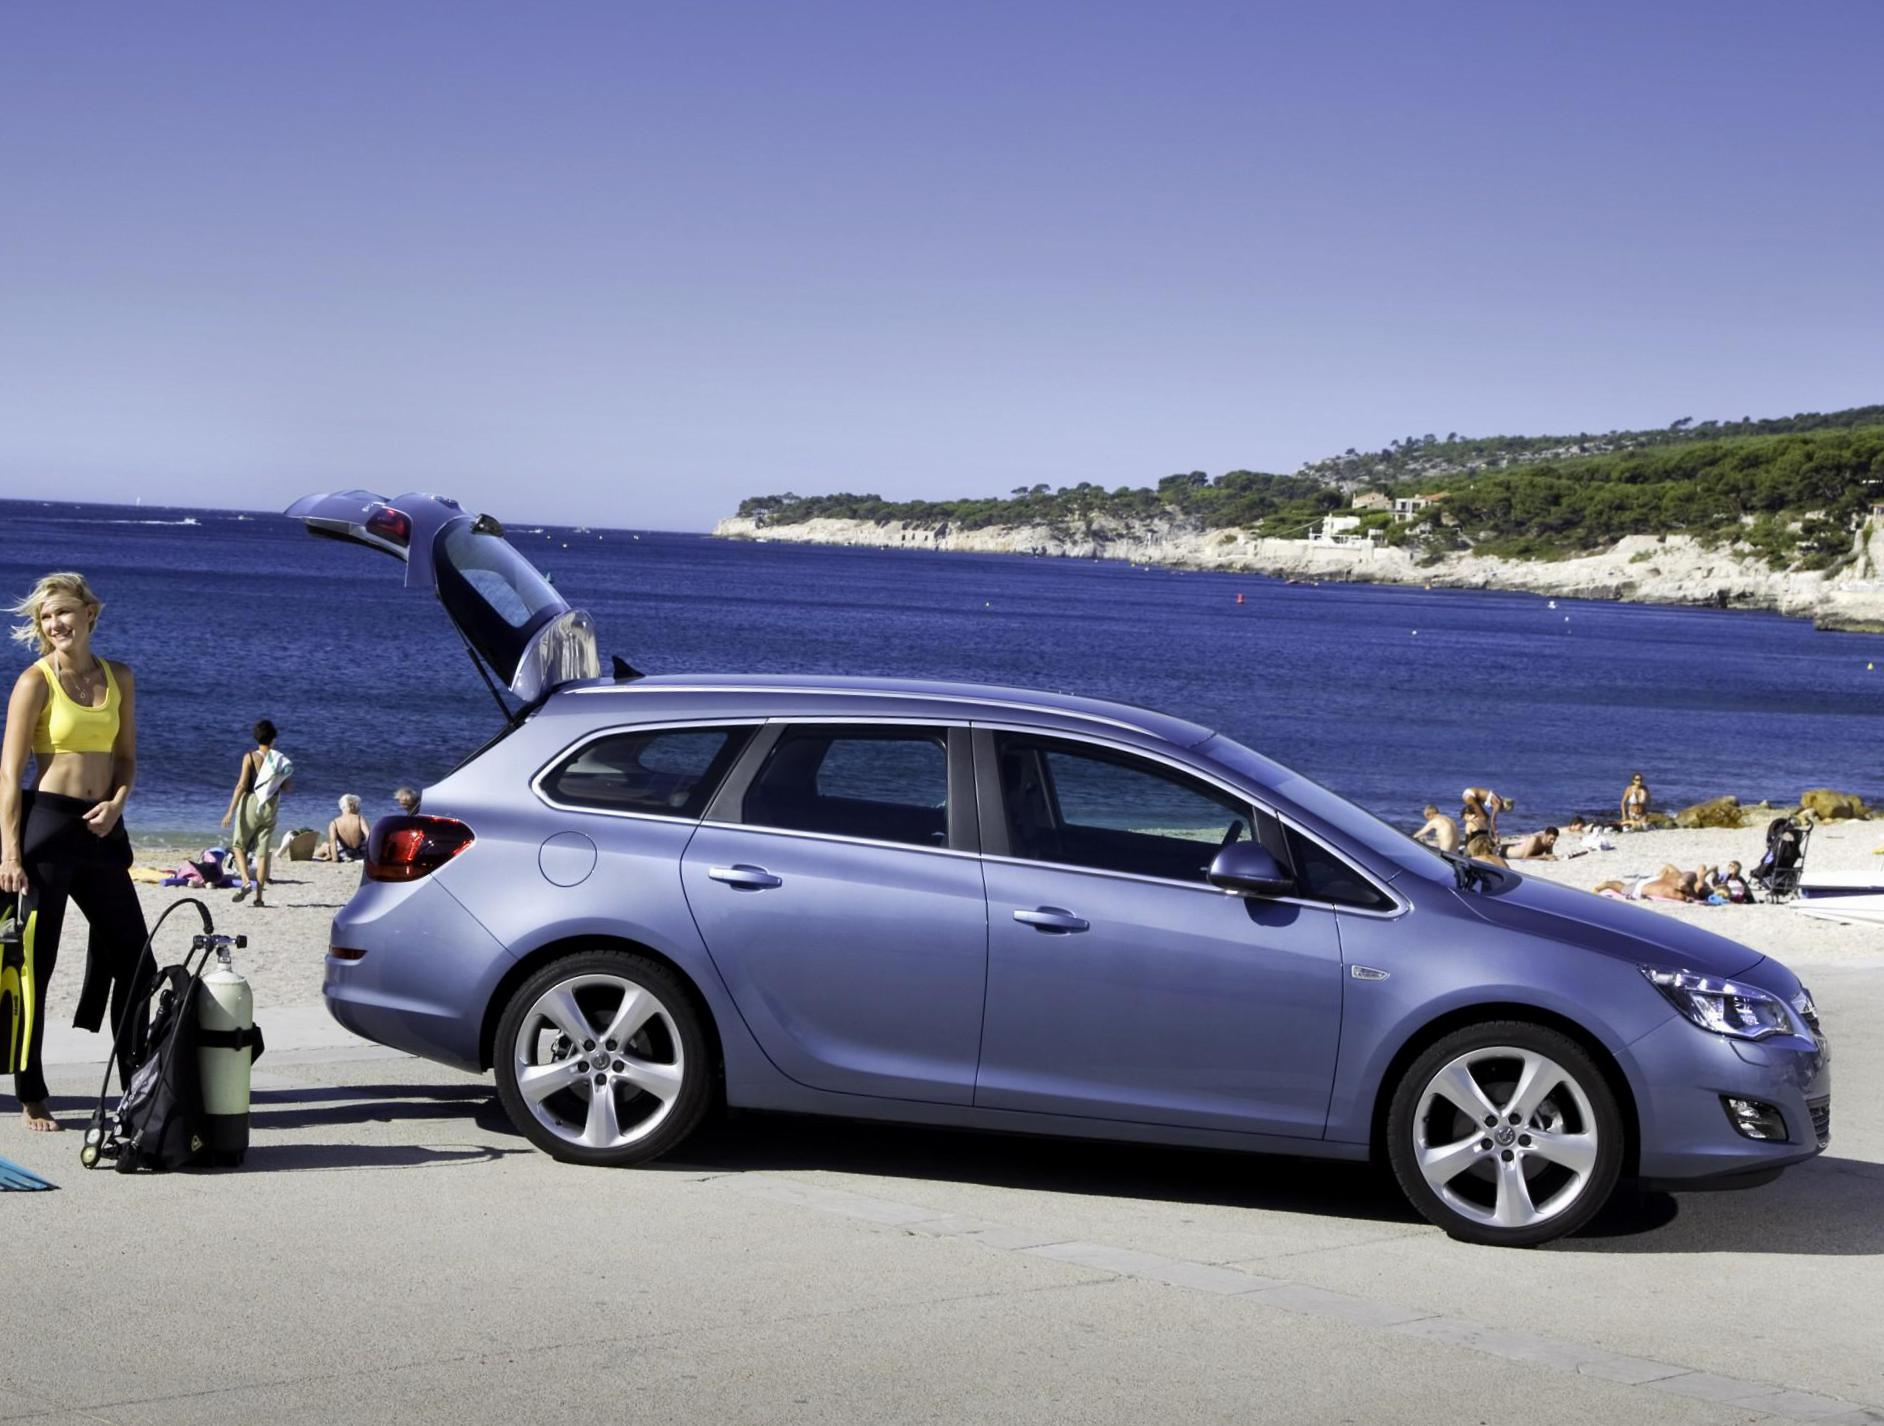 Opel Astra J Sports Tourer prices 2013